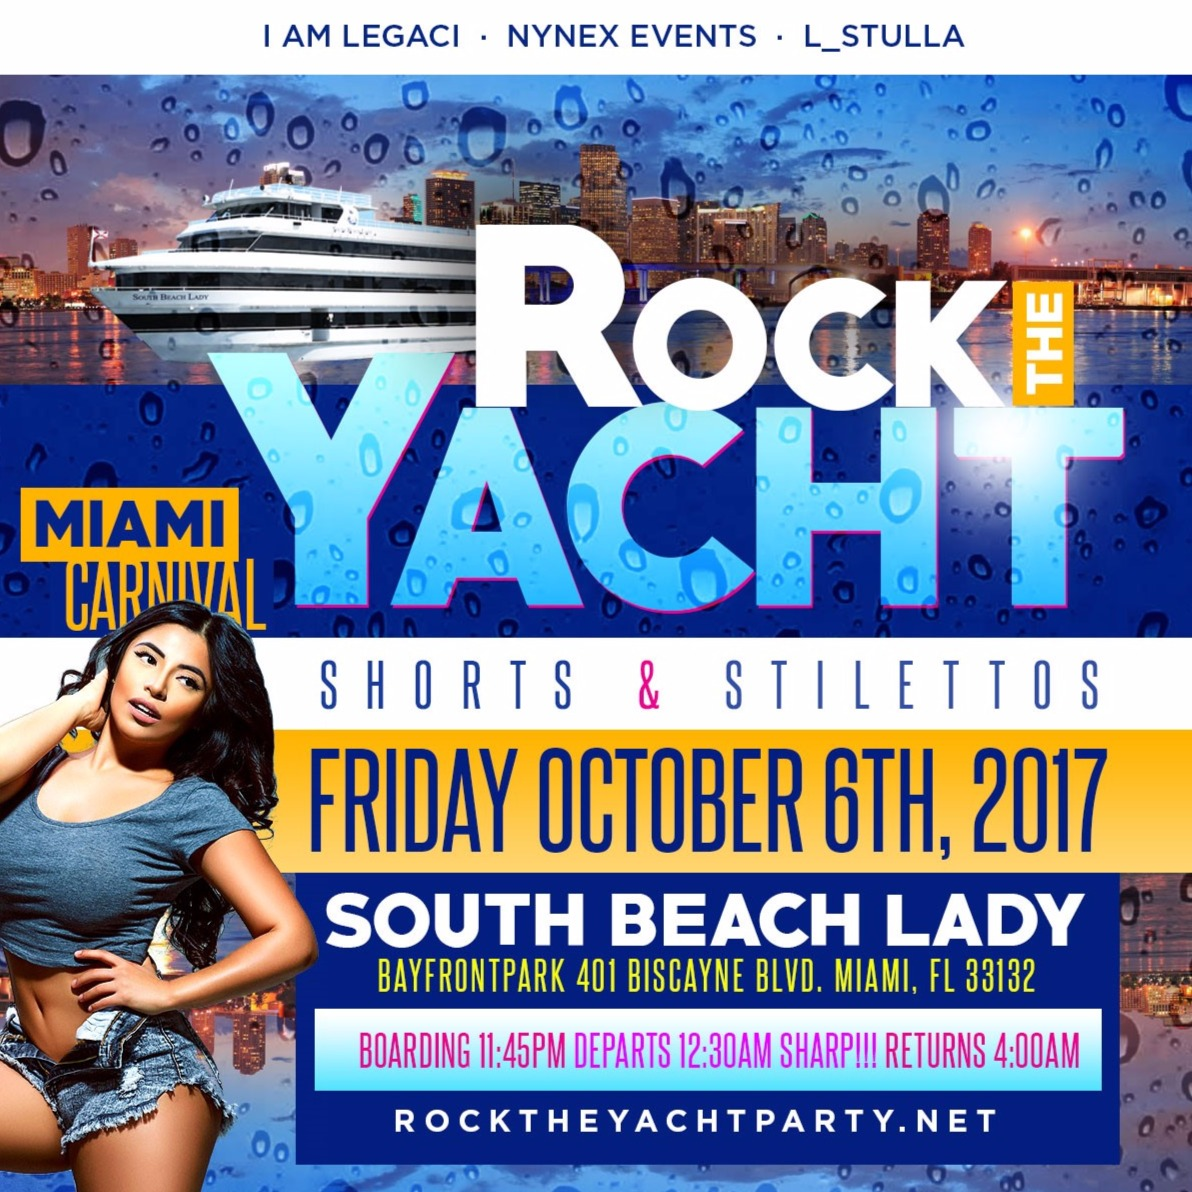 ROCK THE YACHT Shorts and Stilettos Edition Miami Carnival 2017 Yacht Party - Columbus Day Weekend